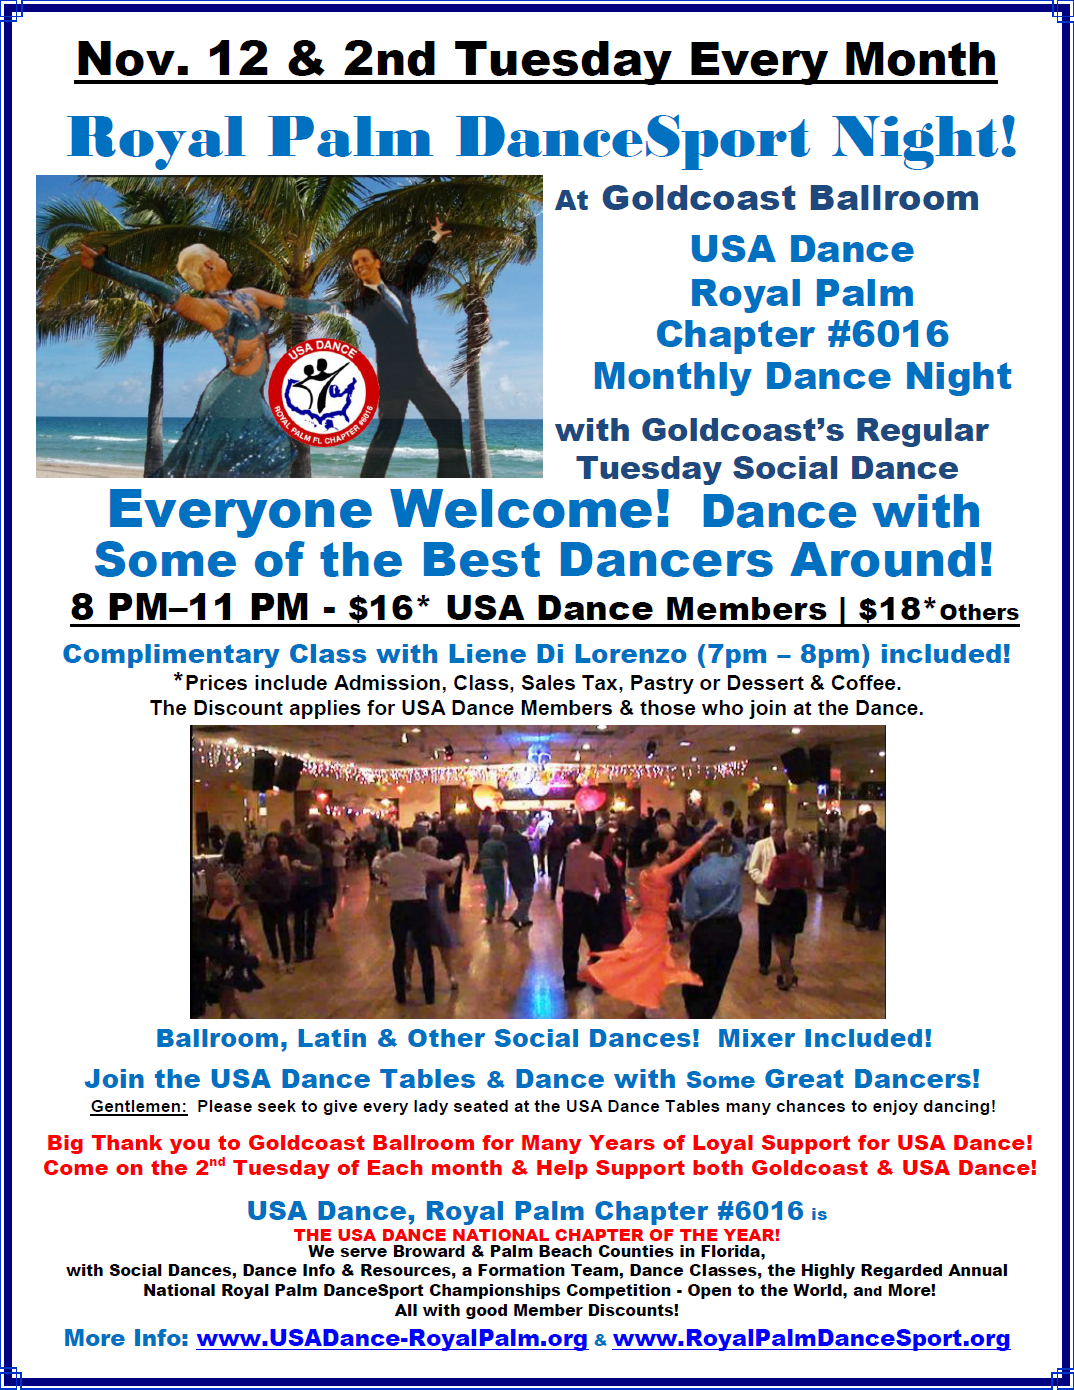 November 12, 2019 - Royal Palm Chapter Dance at Goldcoast Ballroom!